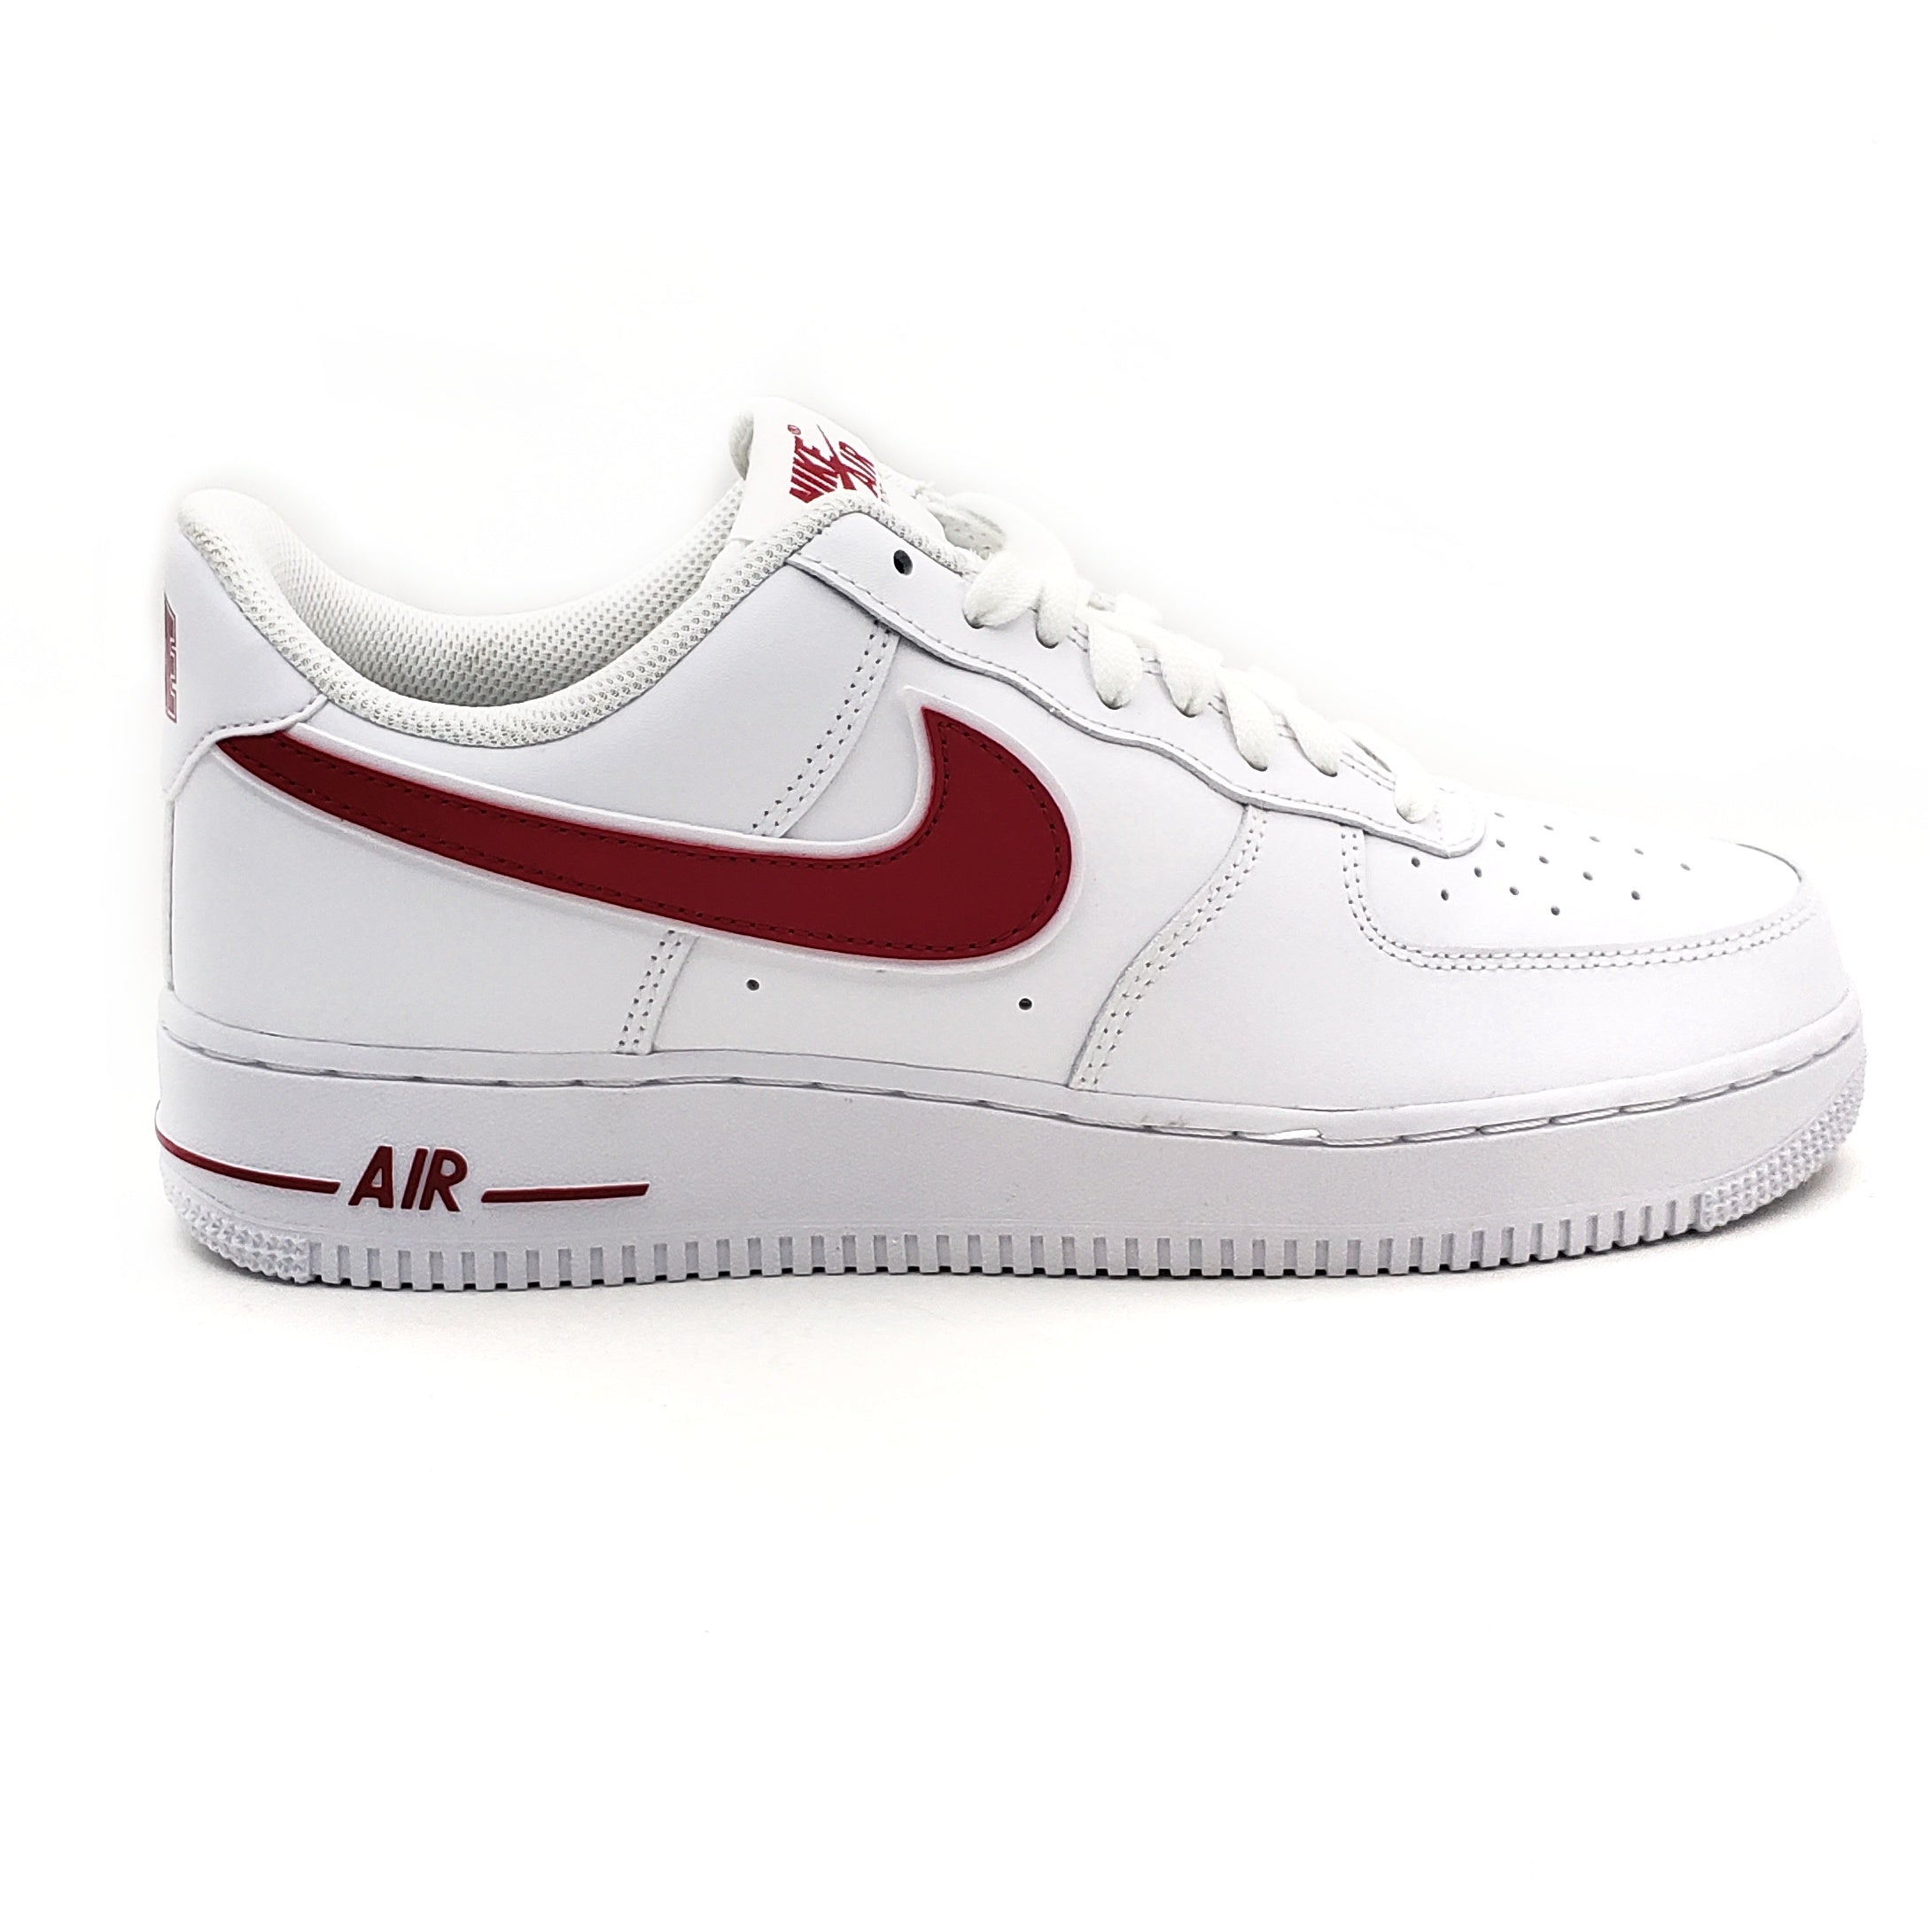 Nike Air Force 1 07 3 WhiteRed in 2020 | Air force shoes